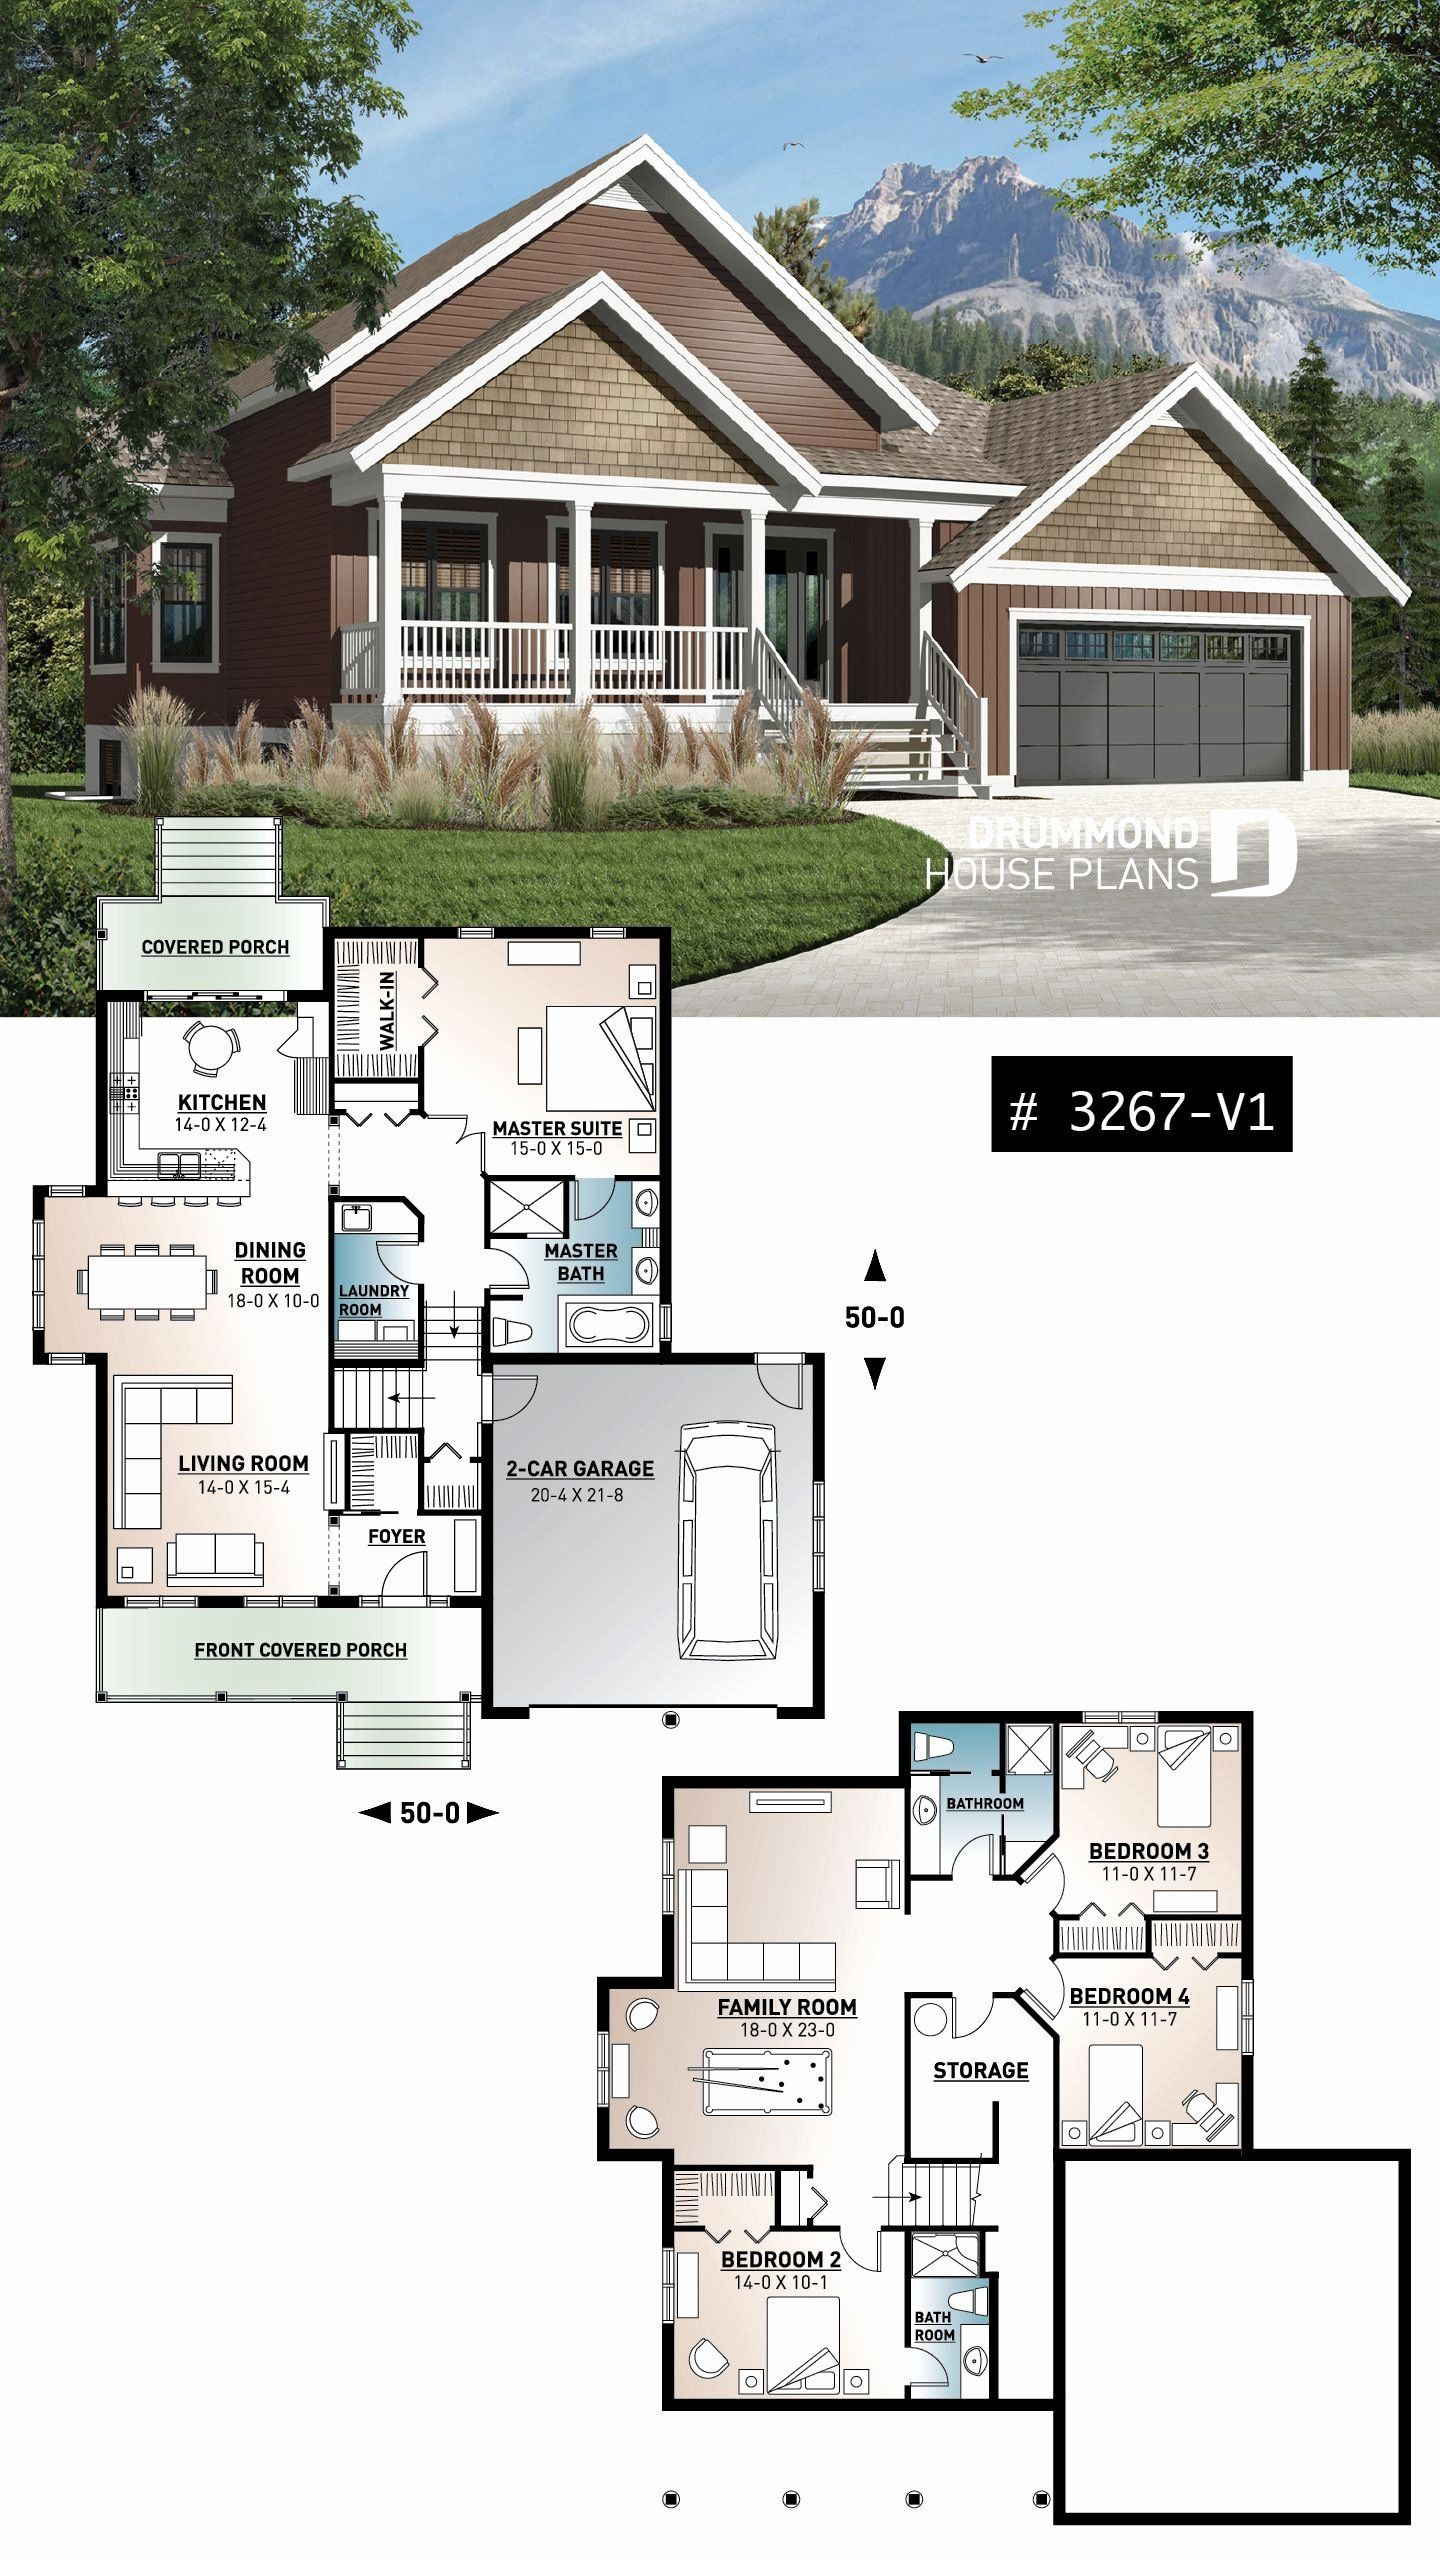 Craftsman 4 Bedroom House Plans Awesome House Plan Jackson 2 No 3267 V1 In 2020 Bungalow House Design House Blueprints Craftsman Style House Plans